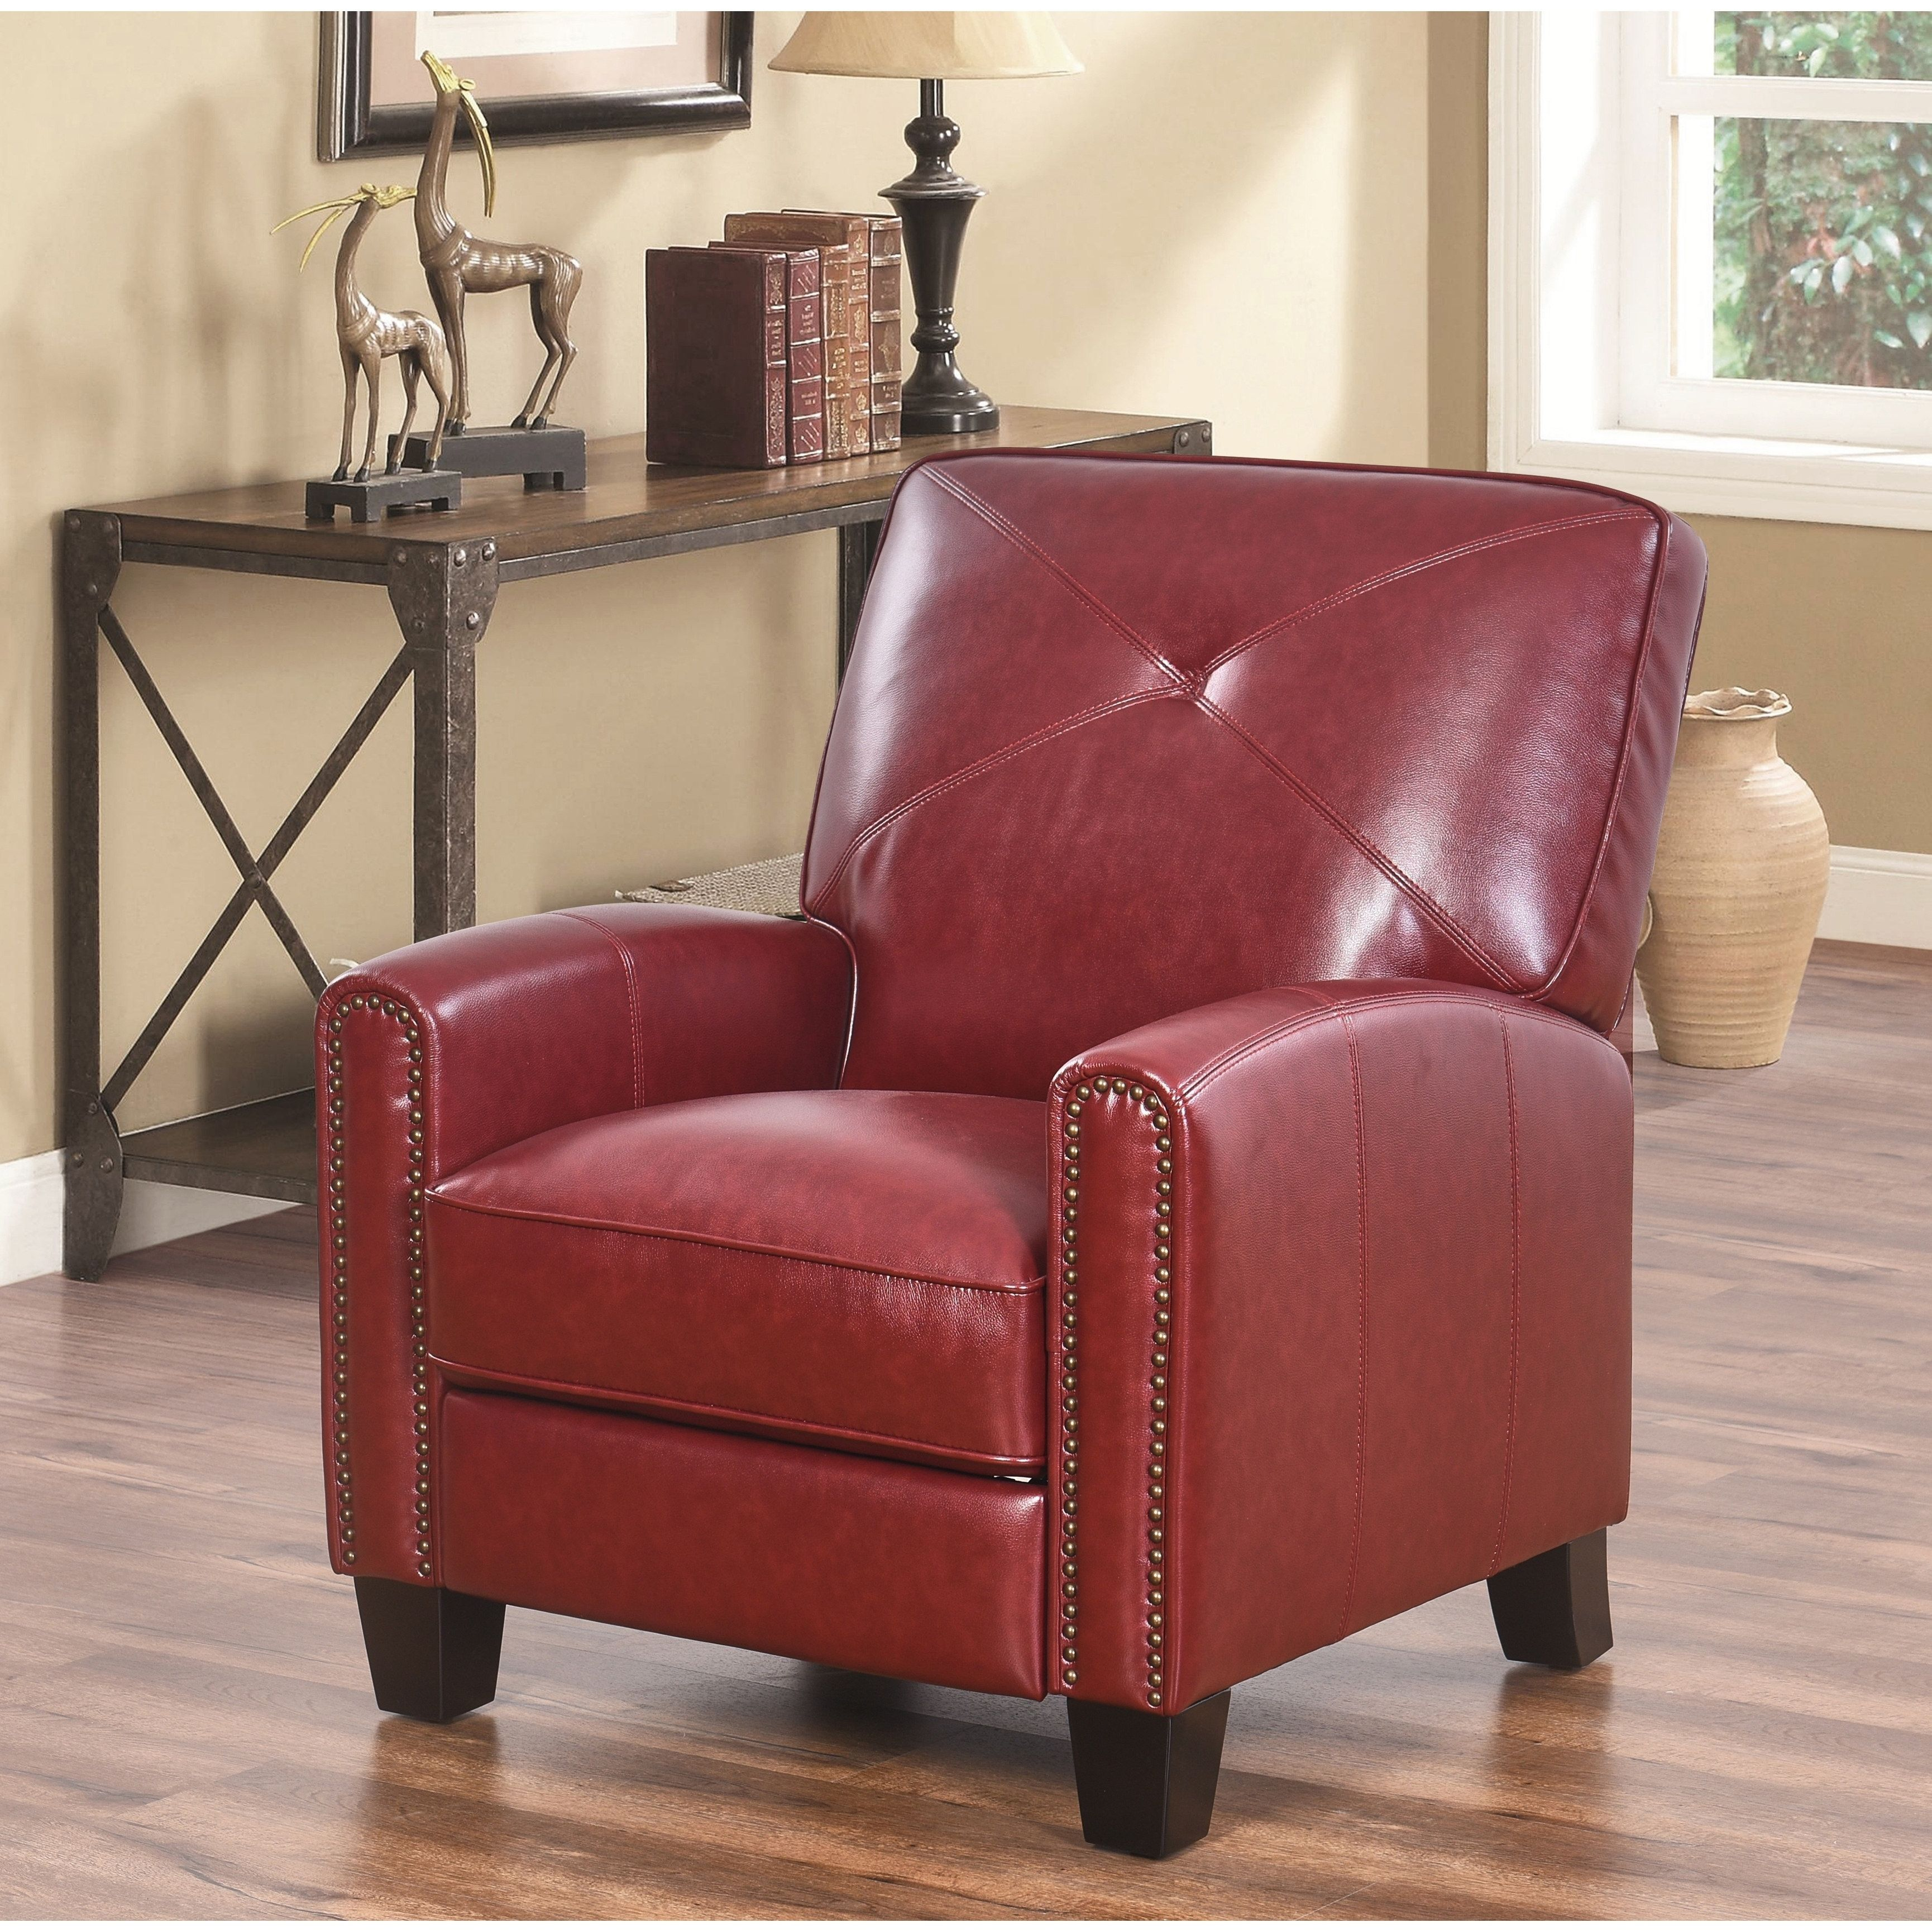 Super Abbyson Carlsbad Pushback Leather Recliner Brown Gmtry Best Dining Table And Chair Ideas Images Gmtryco